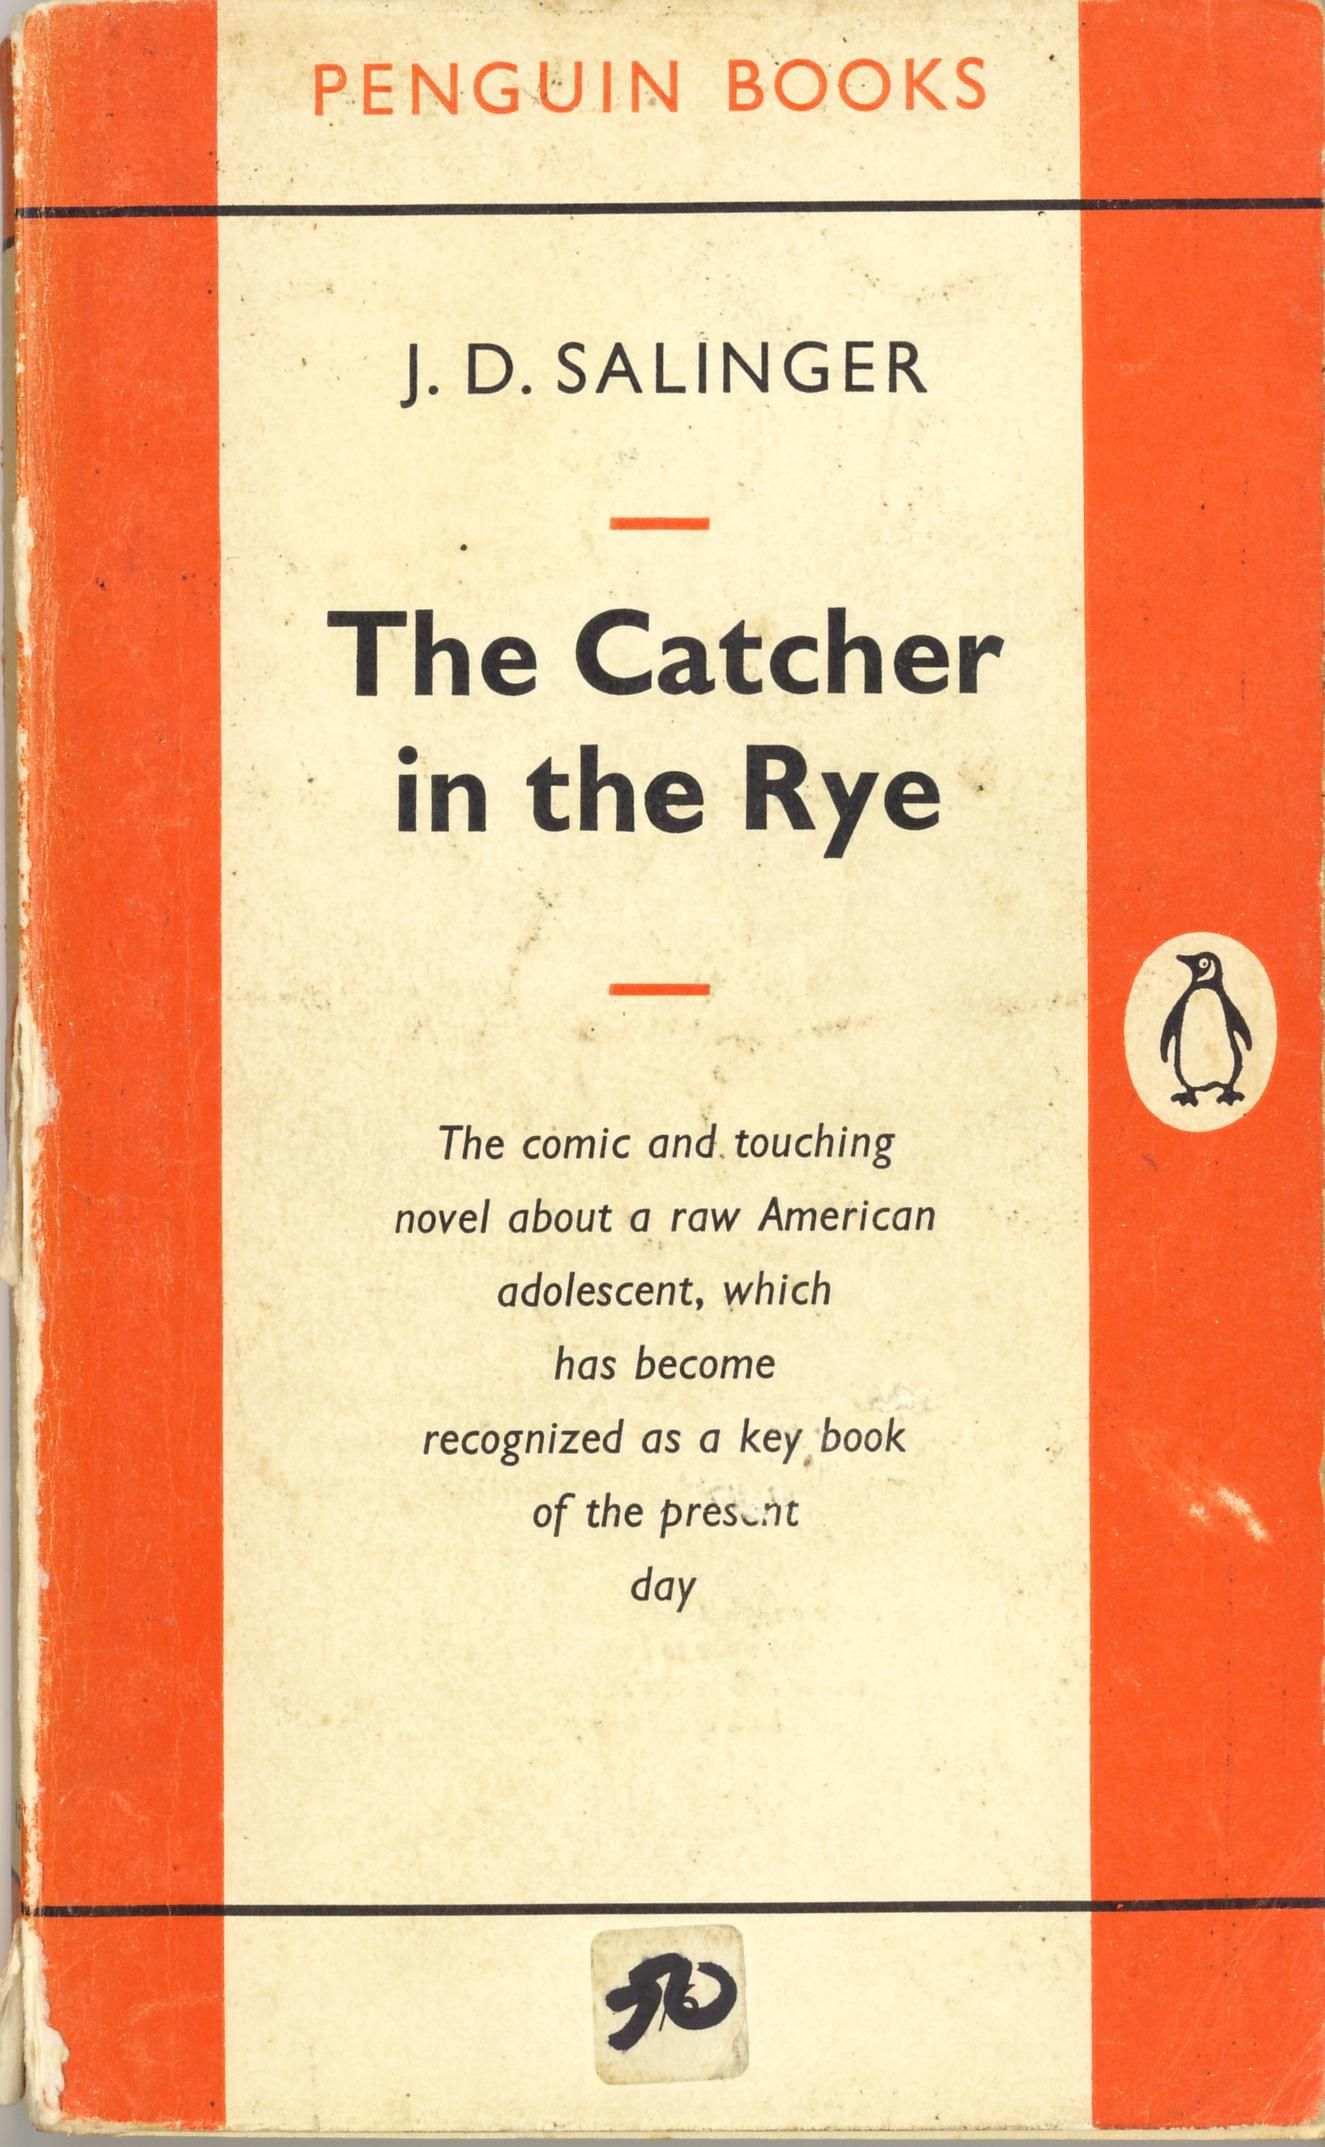 J.D. Salinger ~ The Catcher In the Rye    #penguinbooks #penguinclassics